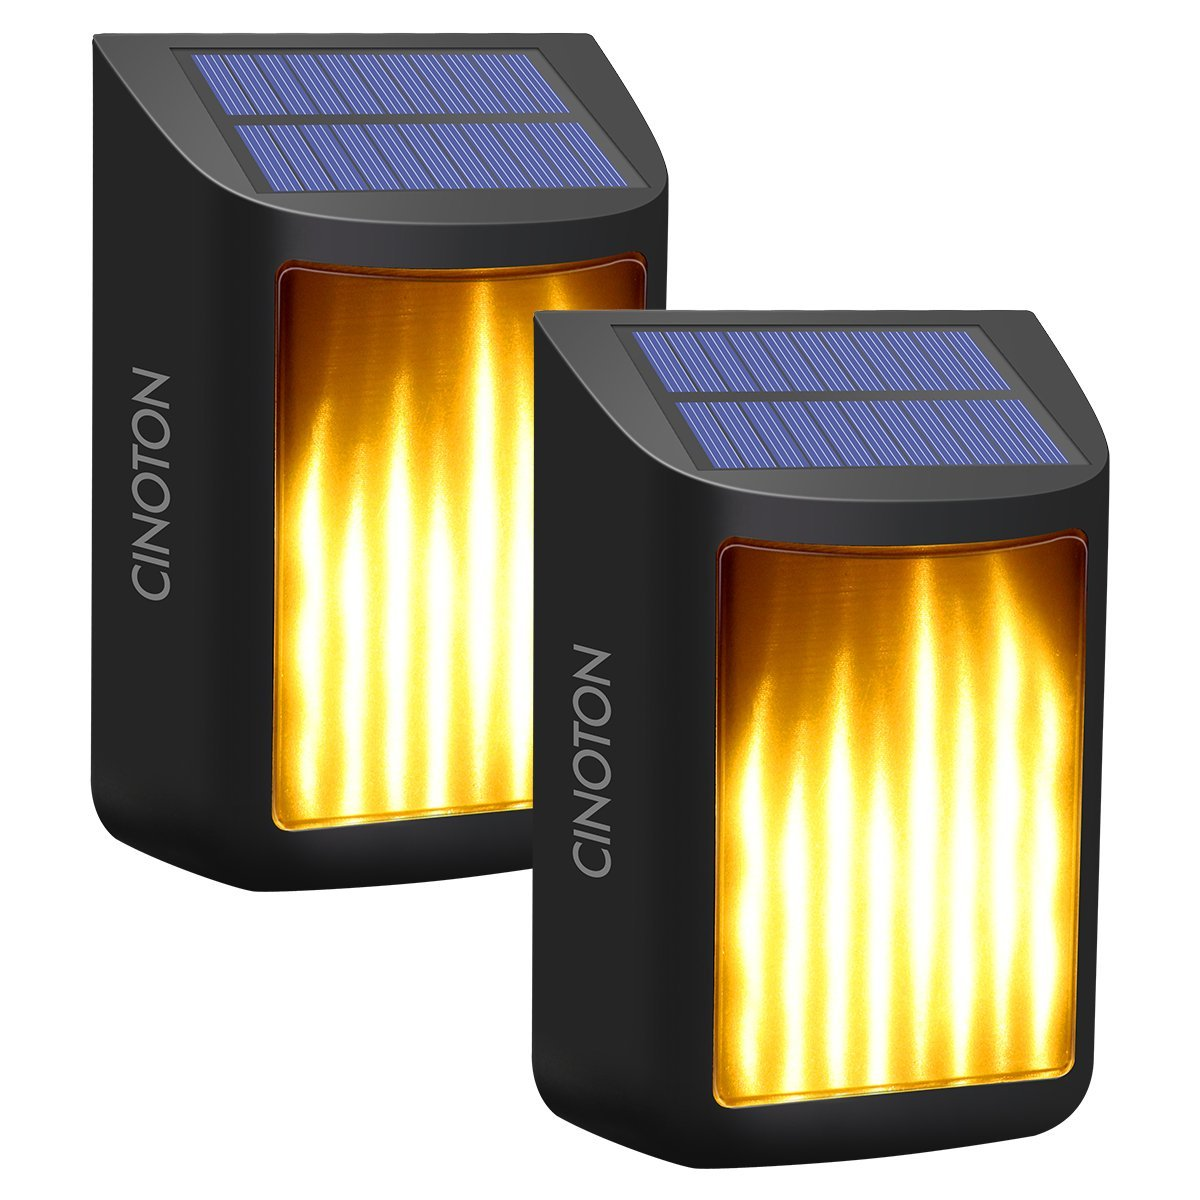 CINOTON Solar Wall Lights, Waterproof Flickering Flame Lights Dark Sensor Step Deck Lamps Wall Mounted Night Lights Dusk to Dawn Landscape Lighting Outdoor Garden Driveway Pathway Stairs Fence(2)